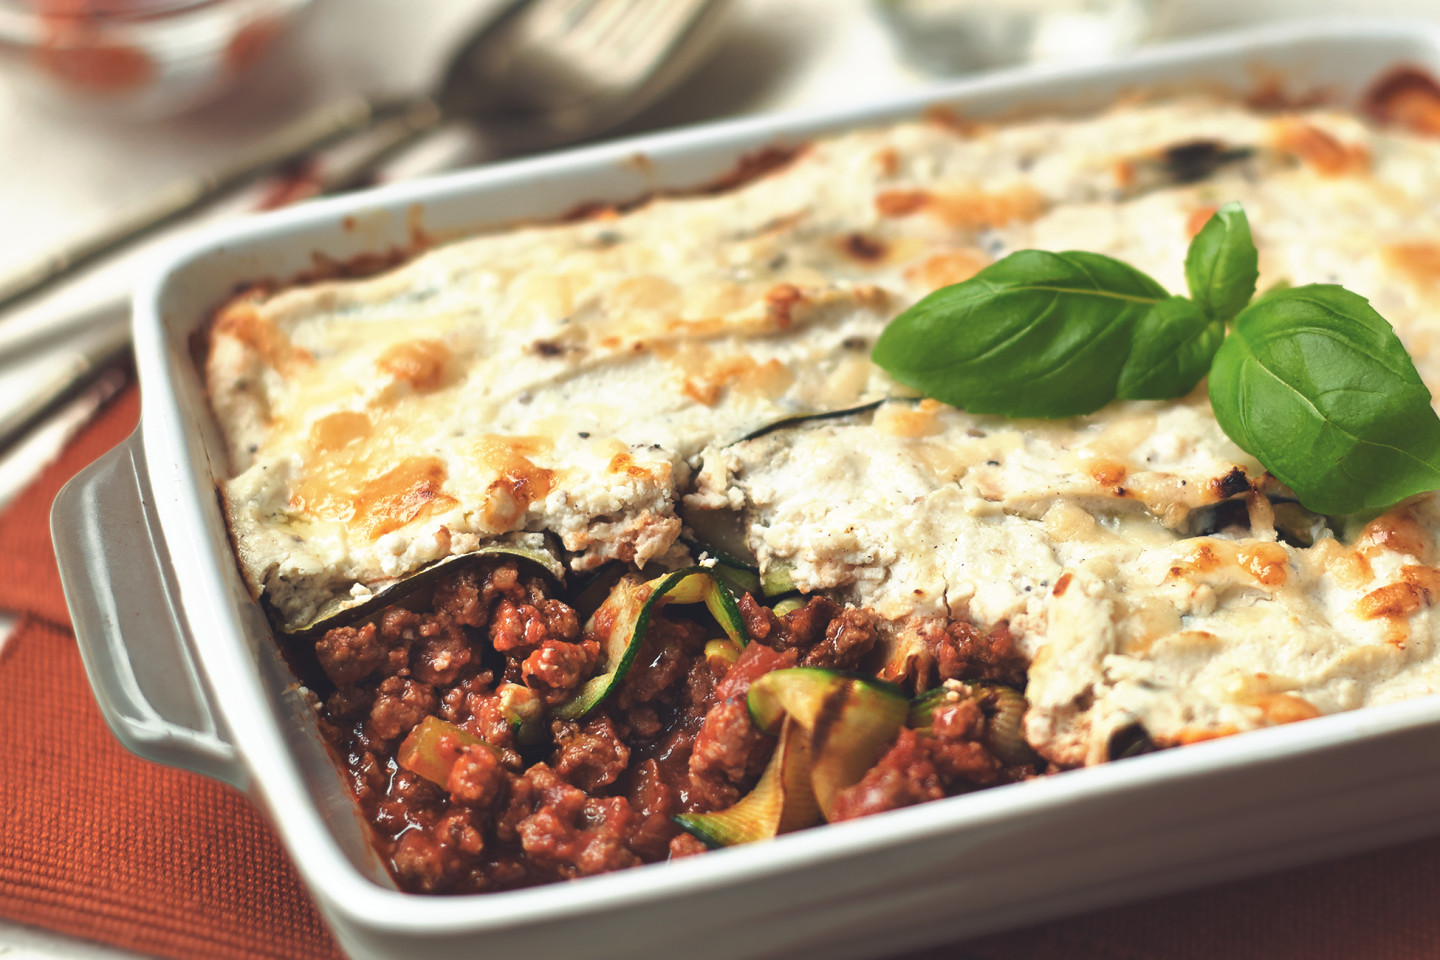 Quorn Grounds Recipes for Fall